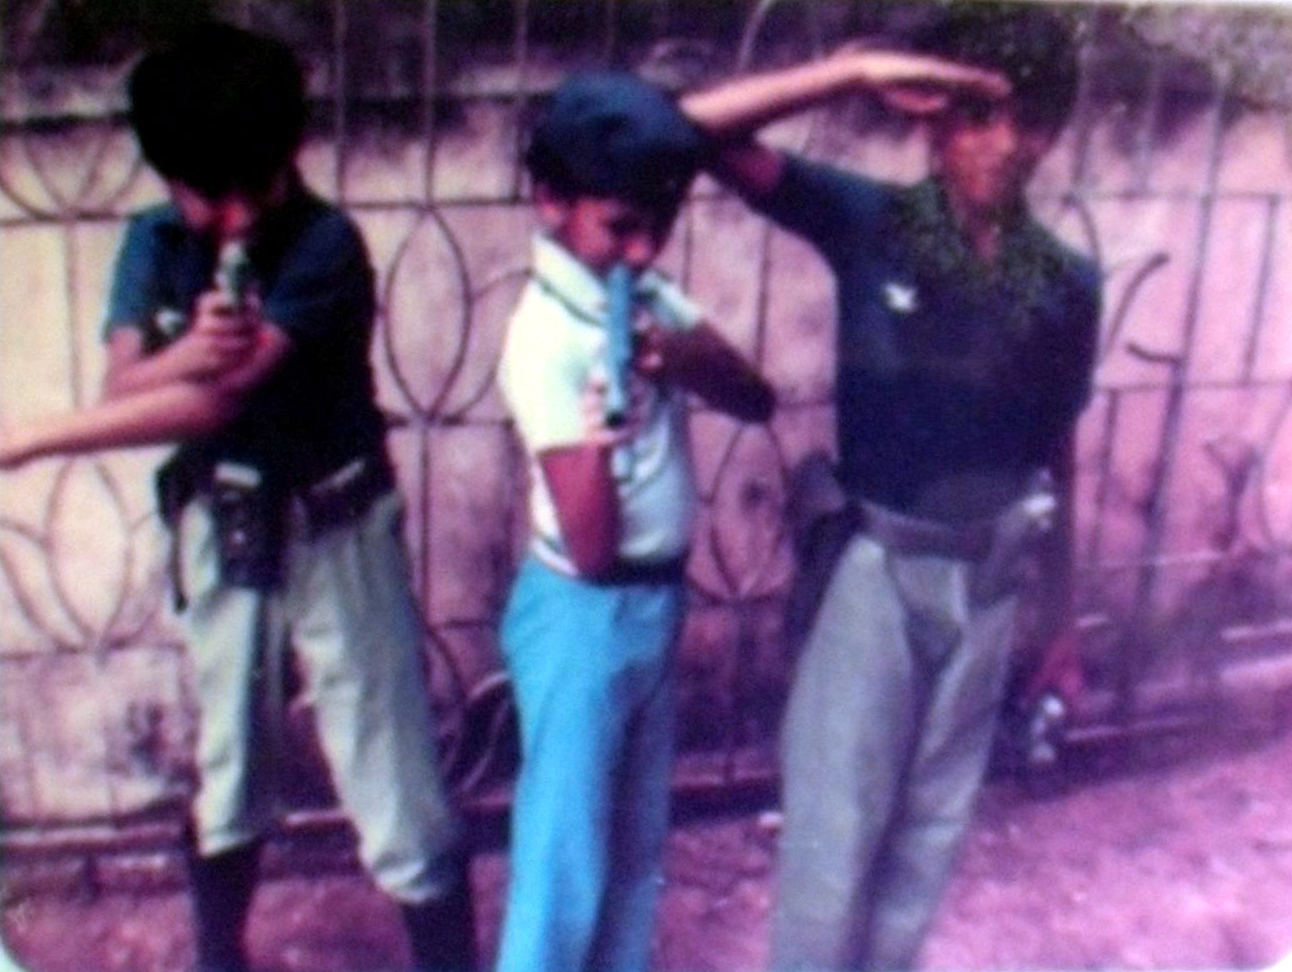 Me and my brothers playing army at Accha House and Sihina Beach Village. Early 1980s